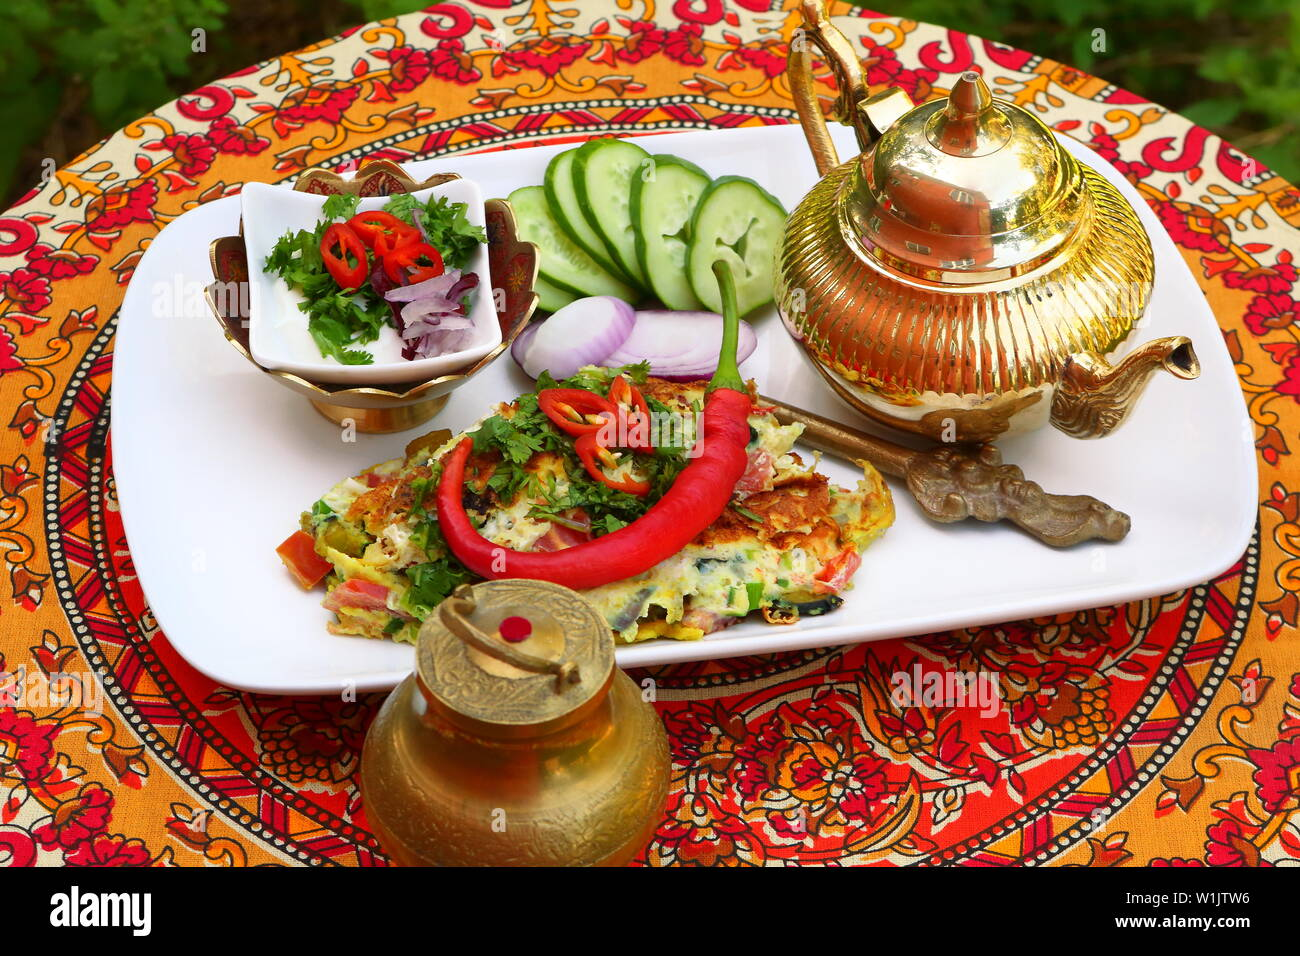 Indian omelet with vegetables and white sauce with tea on a beautiful red tablecloth with ornament - Stock Image